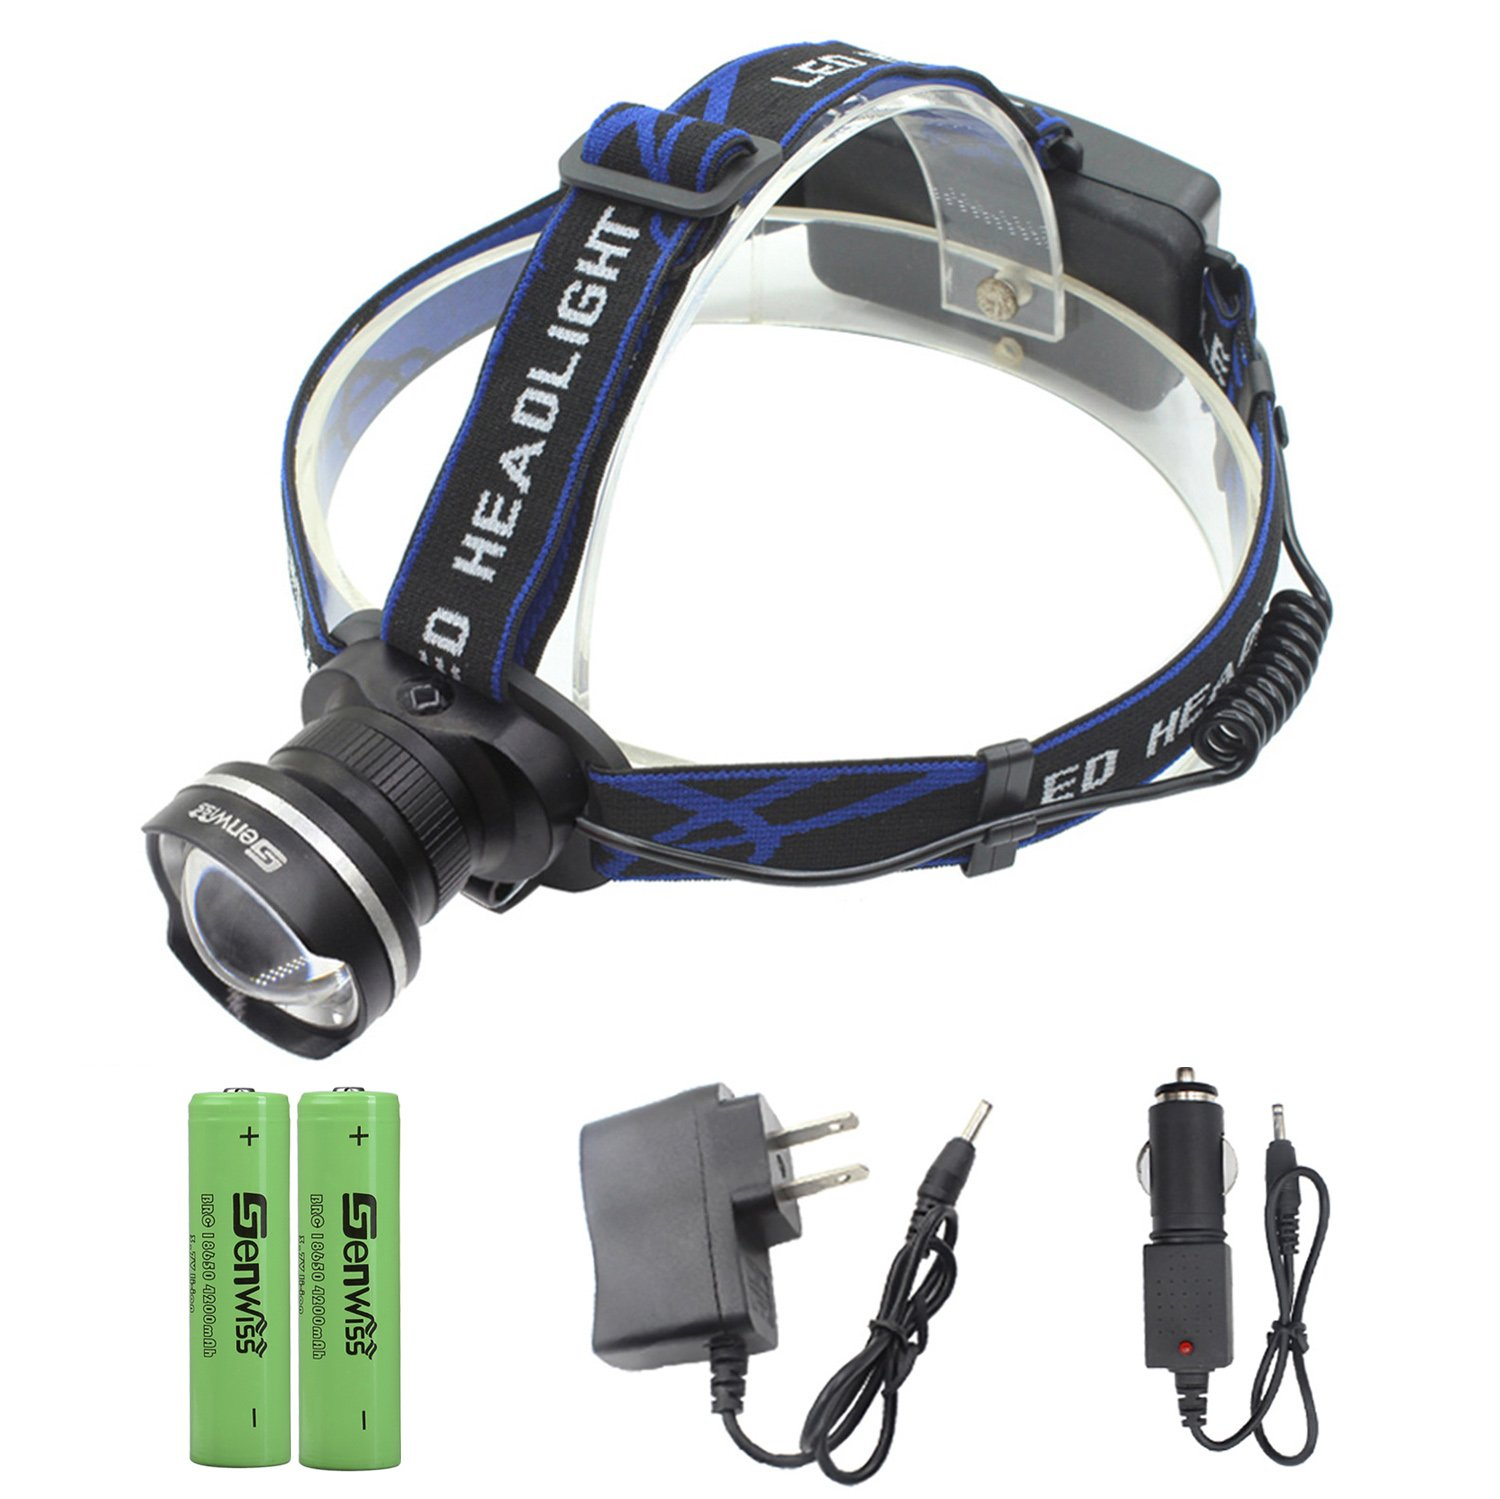 Genwiss Headlamp Flashlight Head lamp, 3000 Lumens XML T6 LED 3 Mode Waterproof Zoom Focus Front Light Super Bright Torch include 2 x 18650 Batteries and charger Camping Biking Hunting Fishing Riding